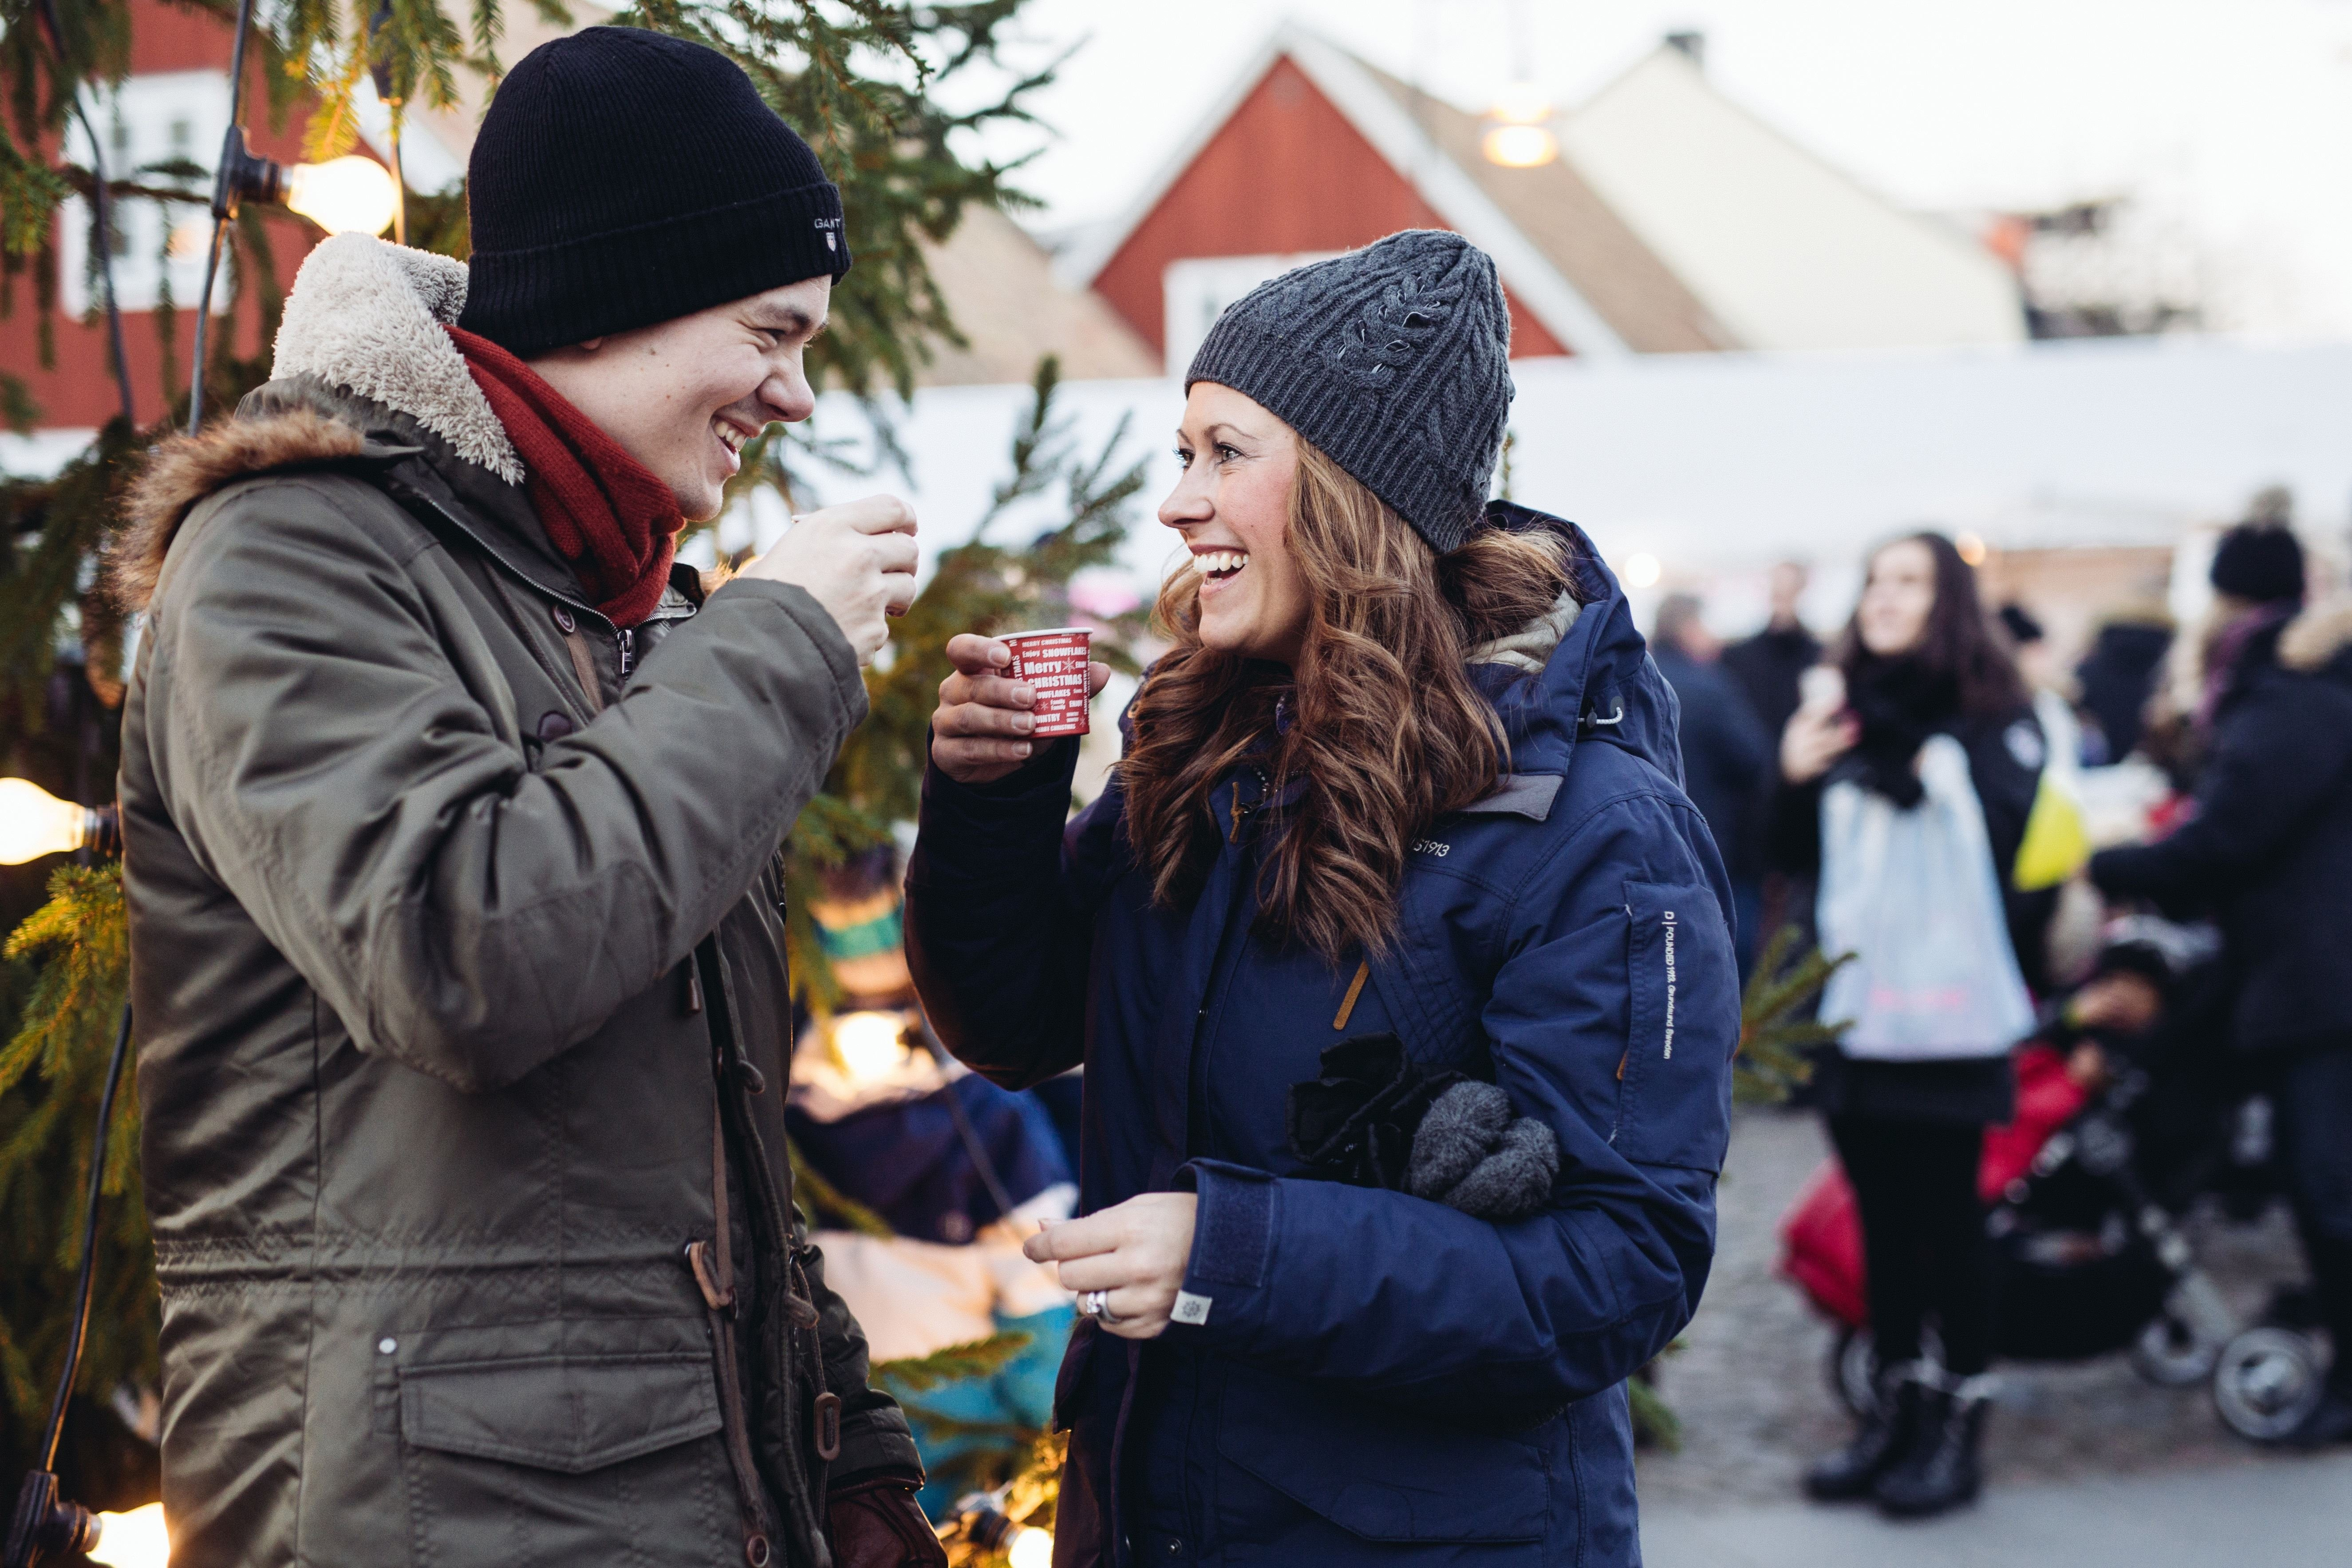 Lena Evertsson, Christmas Market